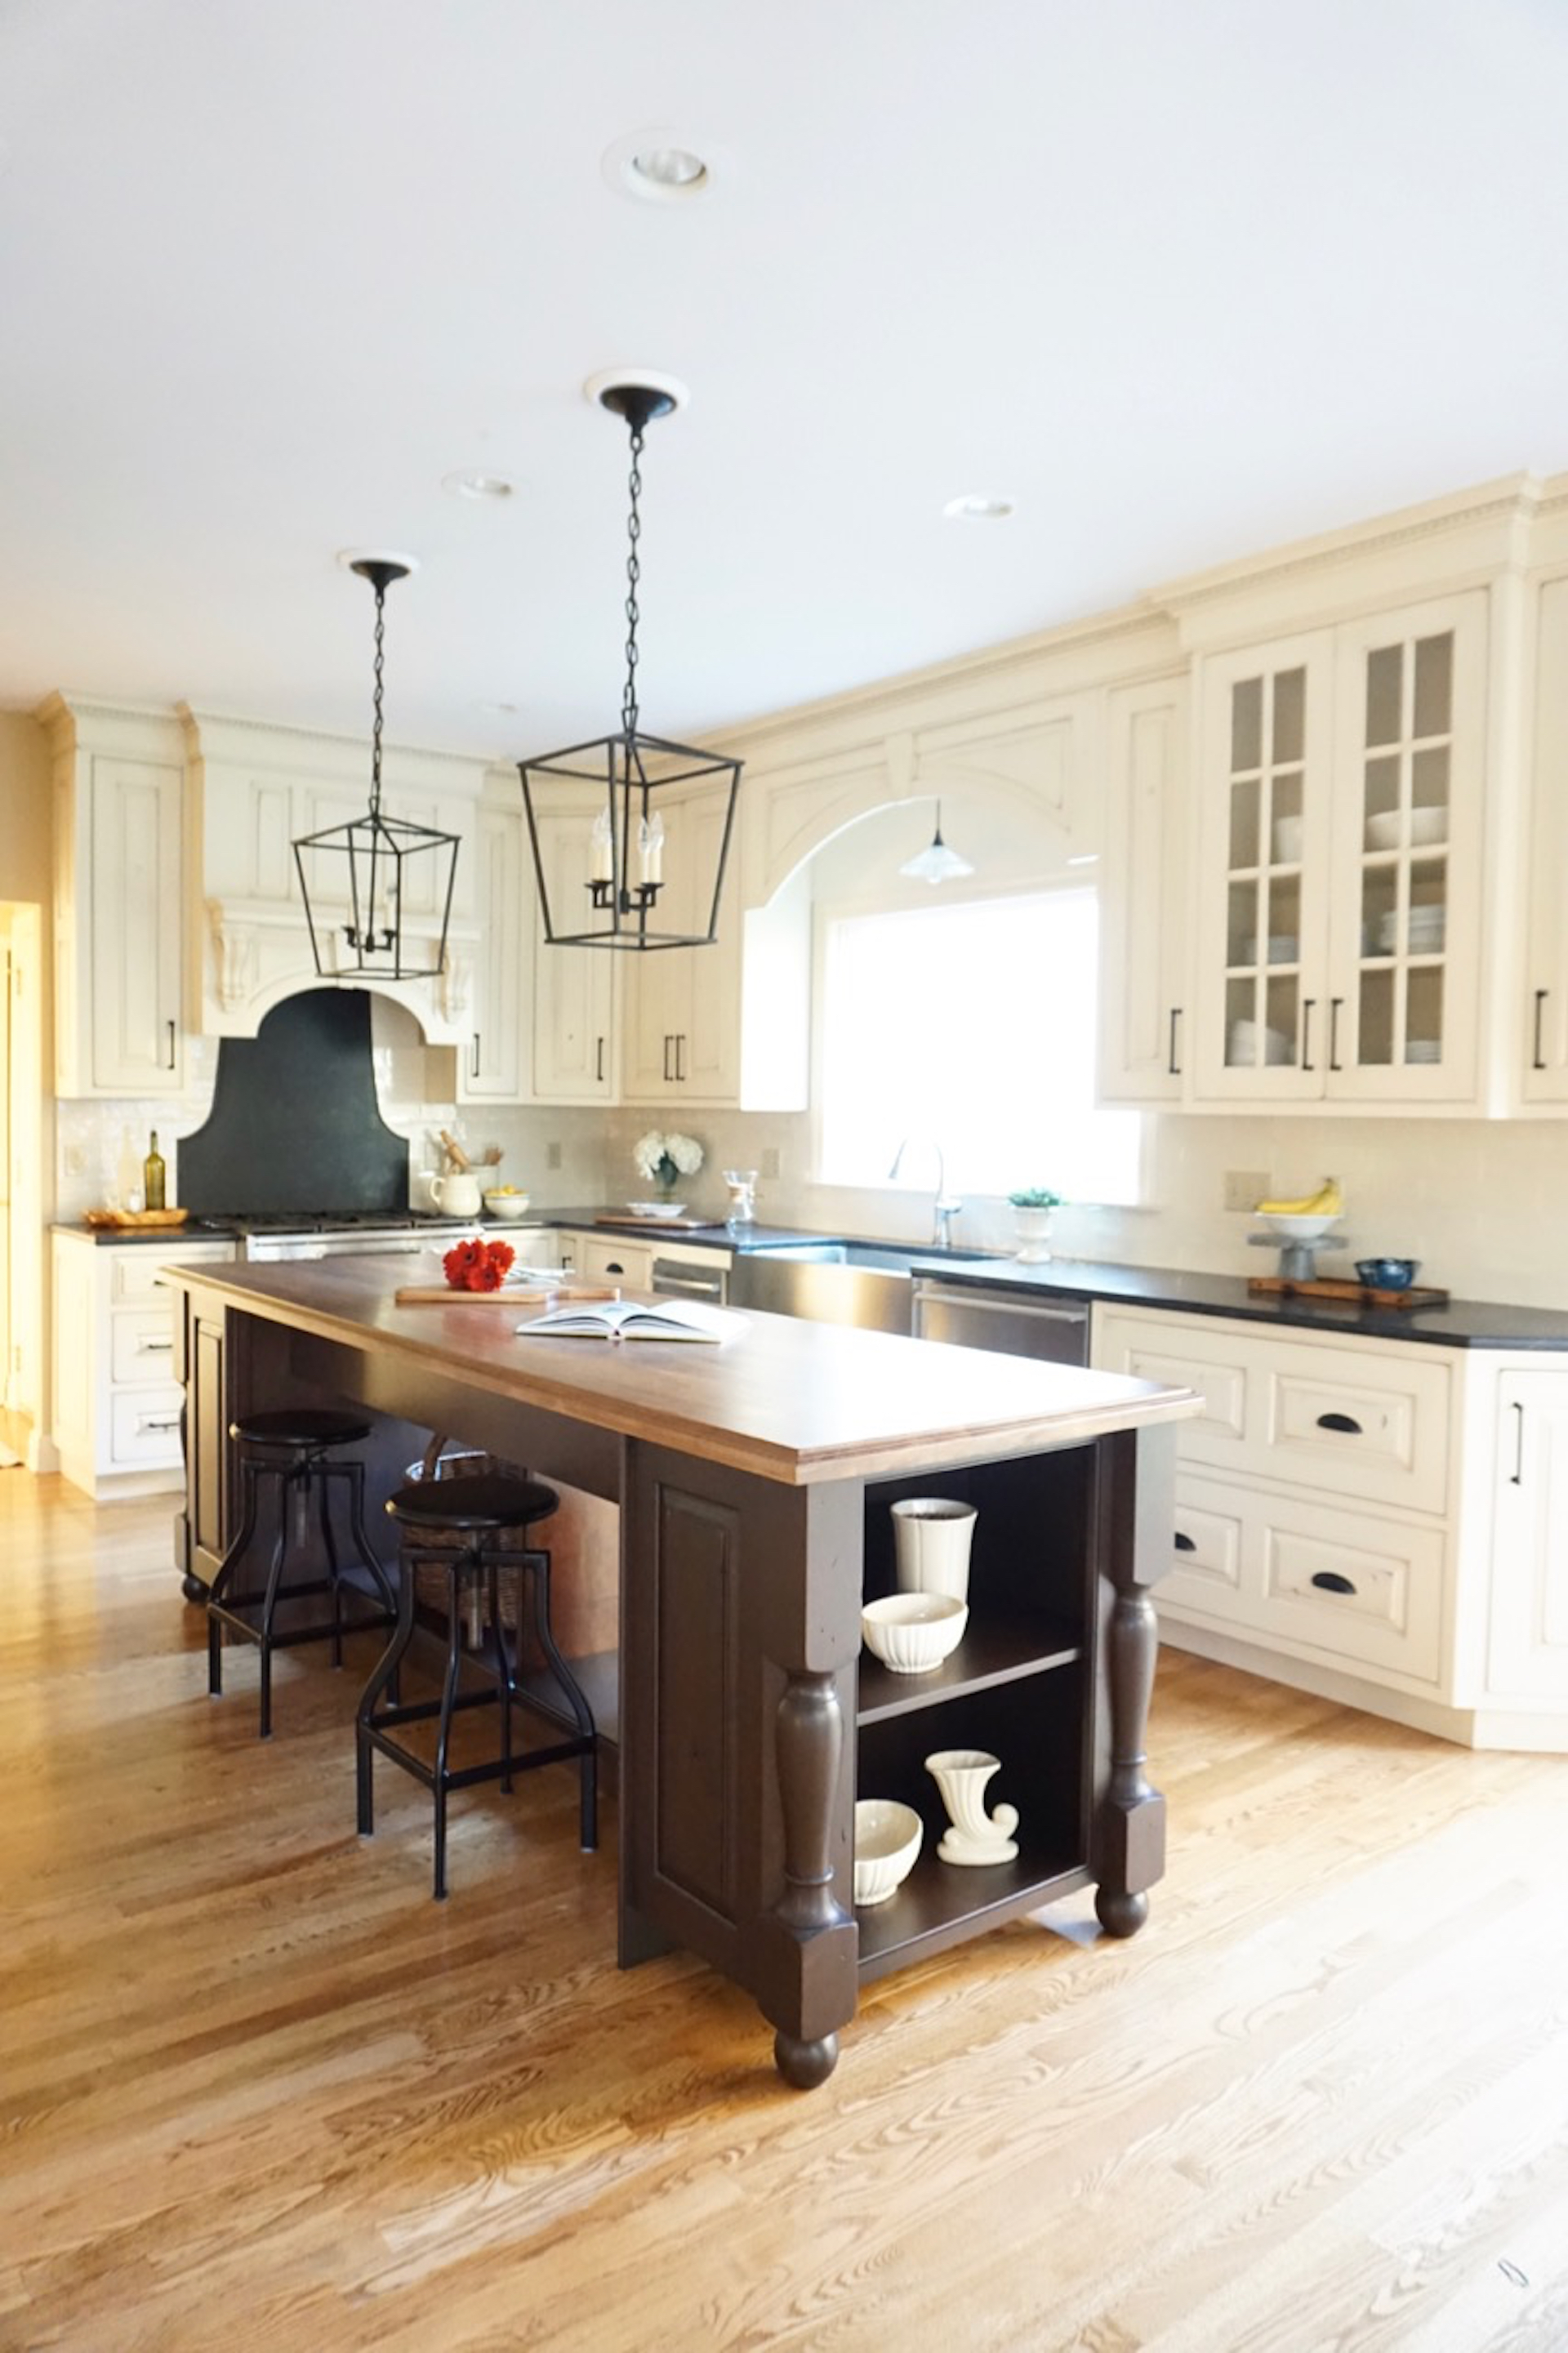 Projects - Affordable Kitchens and Baths